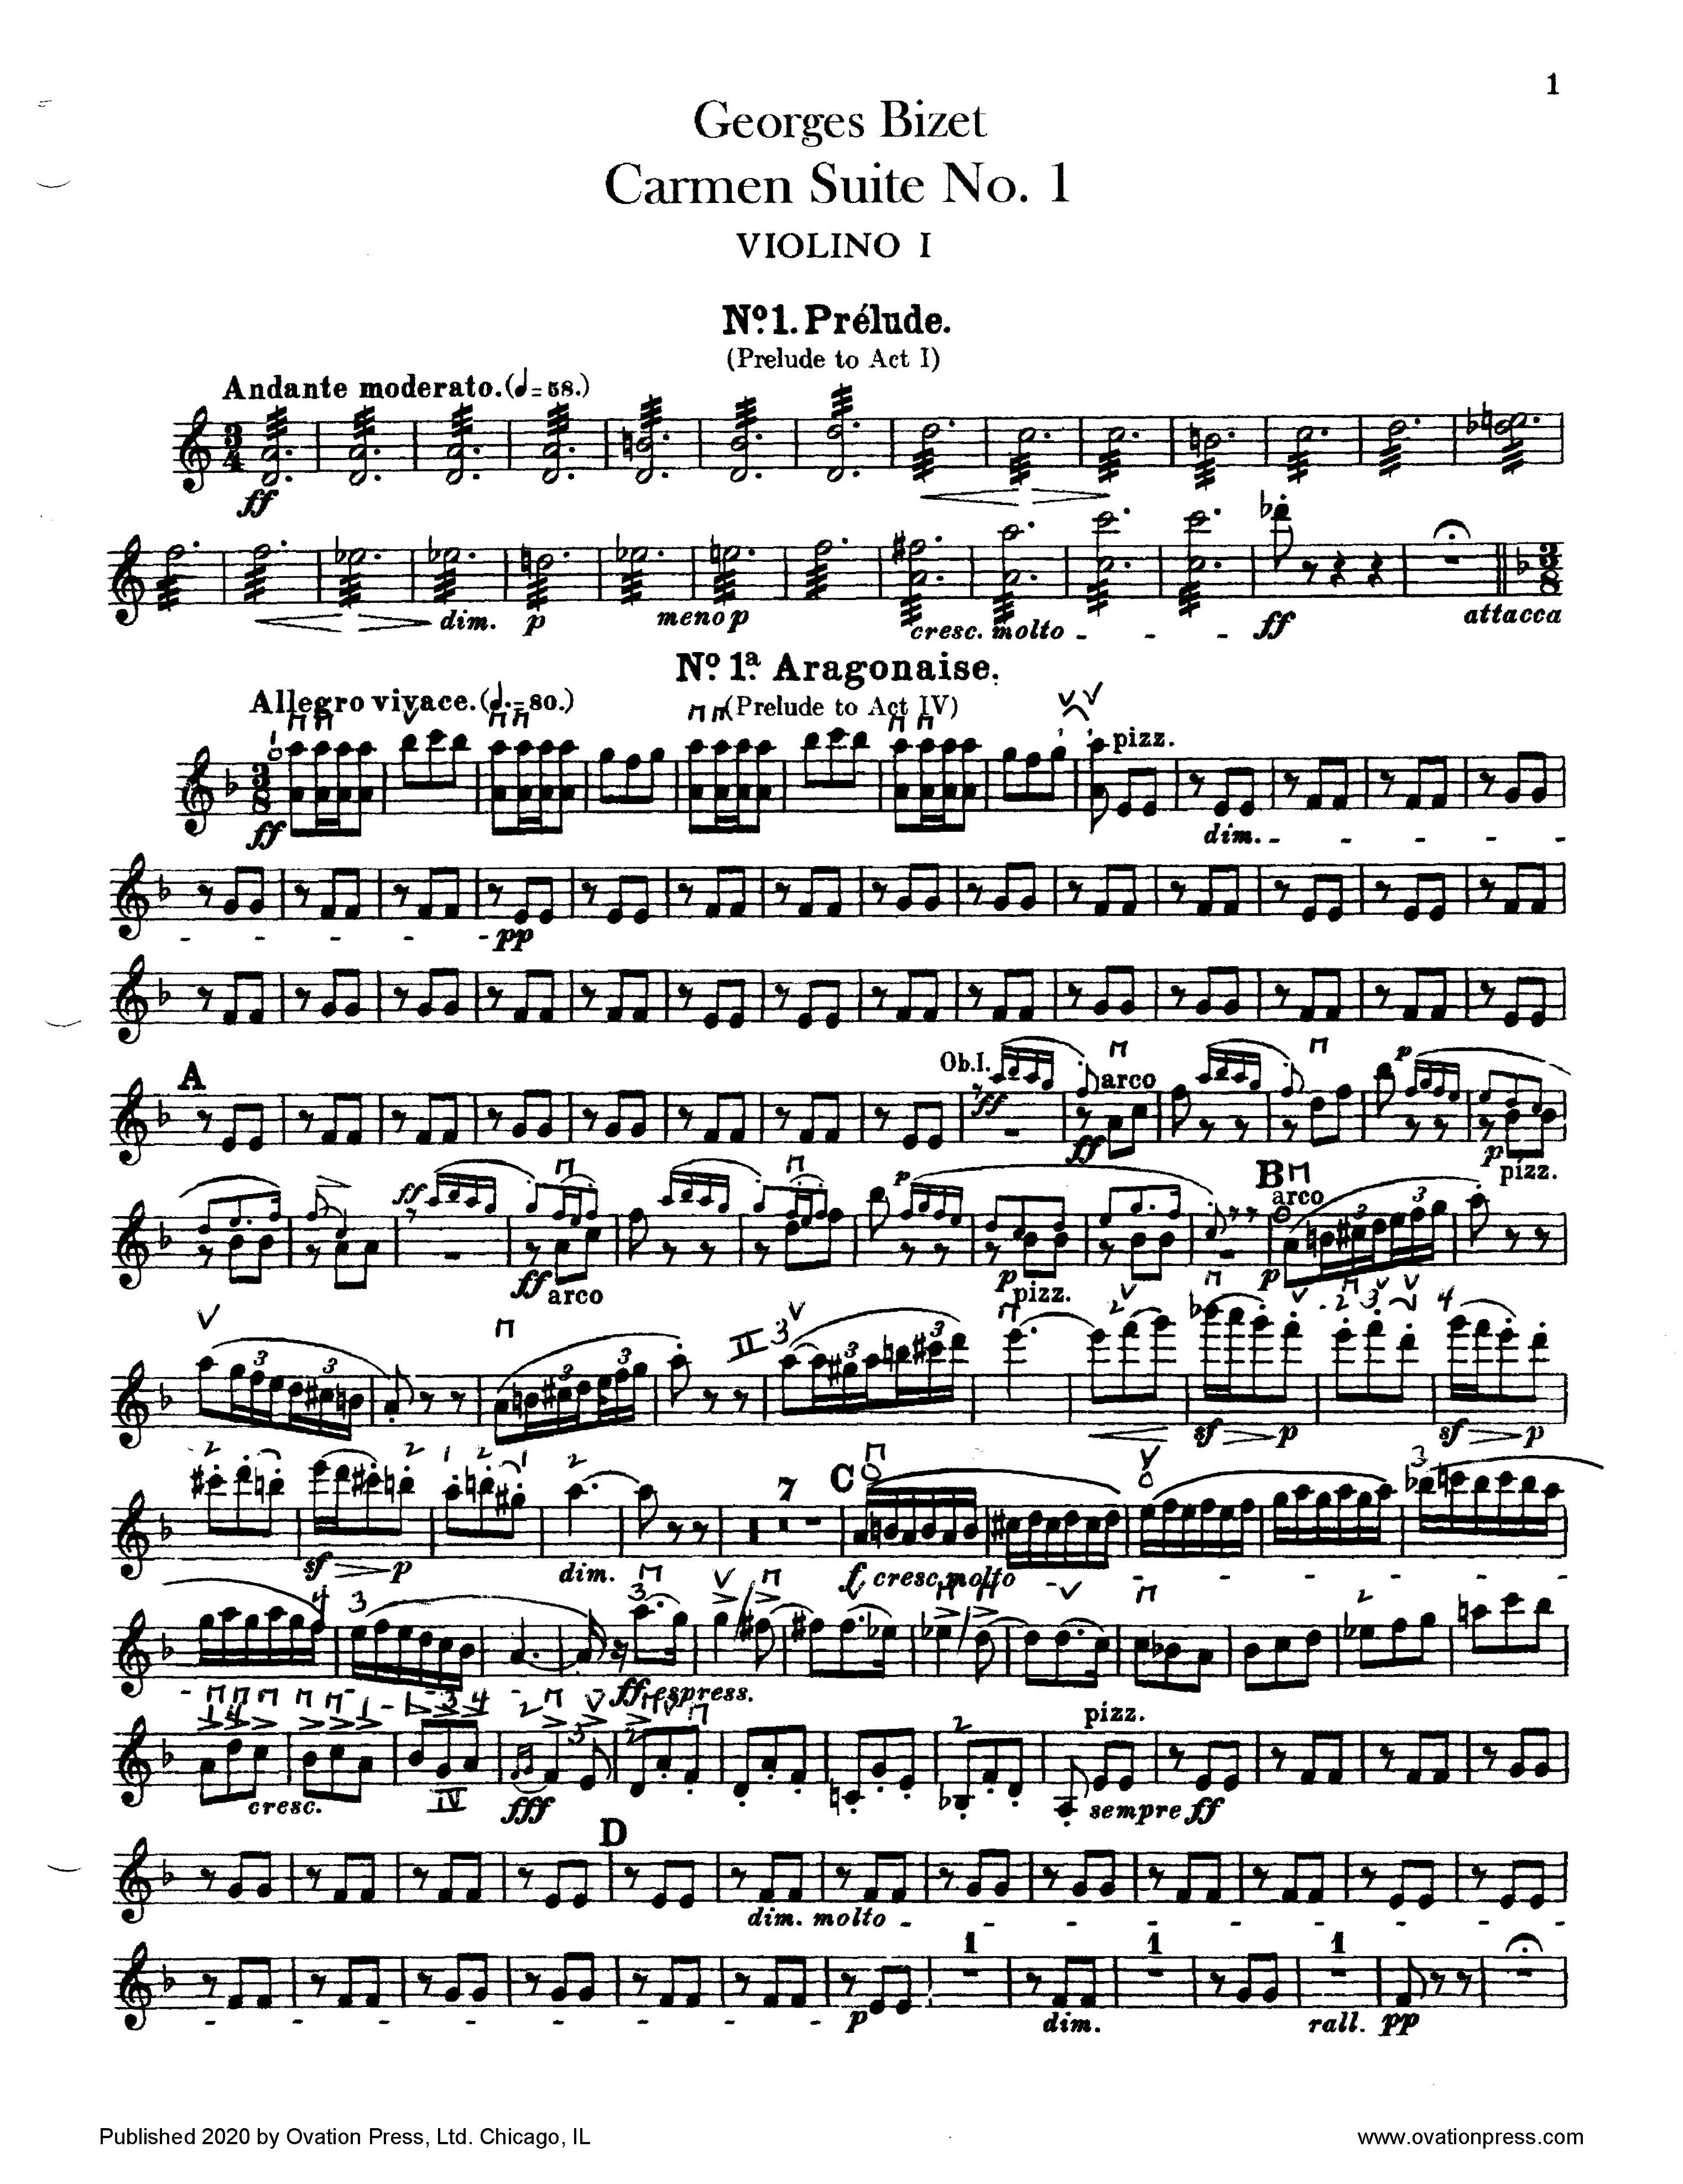 Bizet Carmen Suite No. 1 (for Intermediate Orchestra)